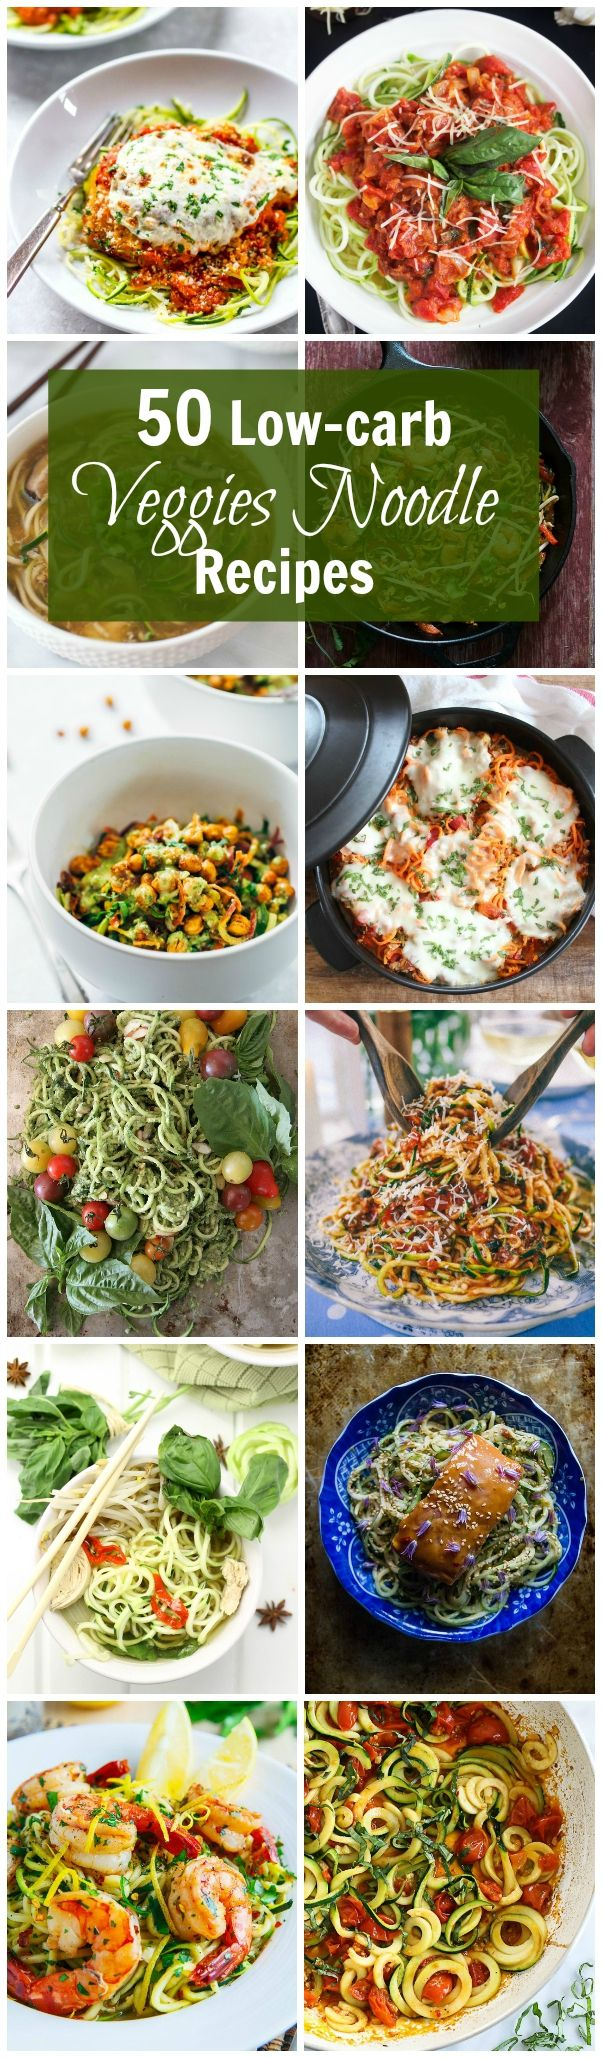 50 Low-Carb Veggies Noodle Recipes - Here are the best and most flavorful veggie noodle recipes around the internet to make your life easier and all in one place